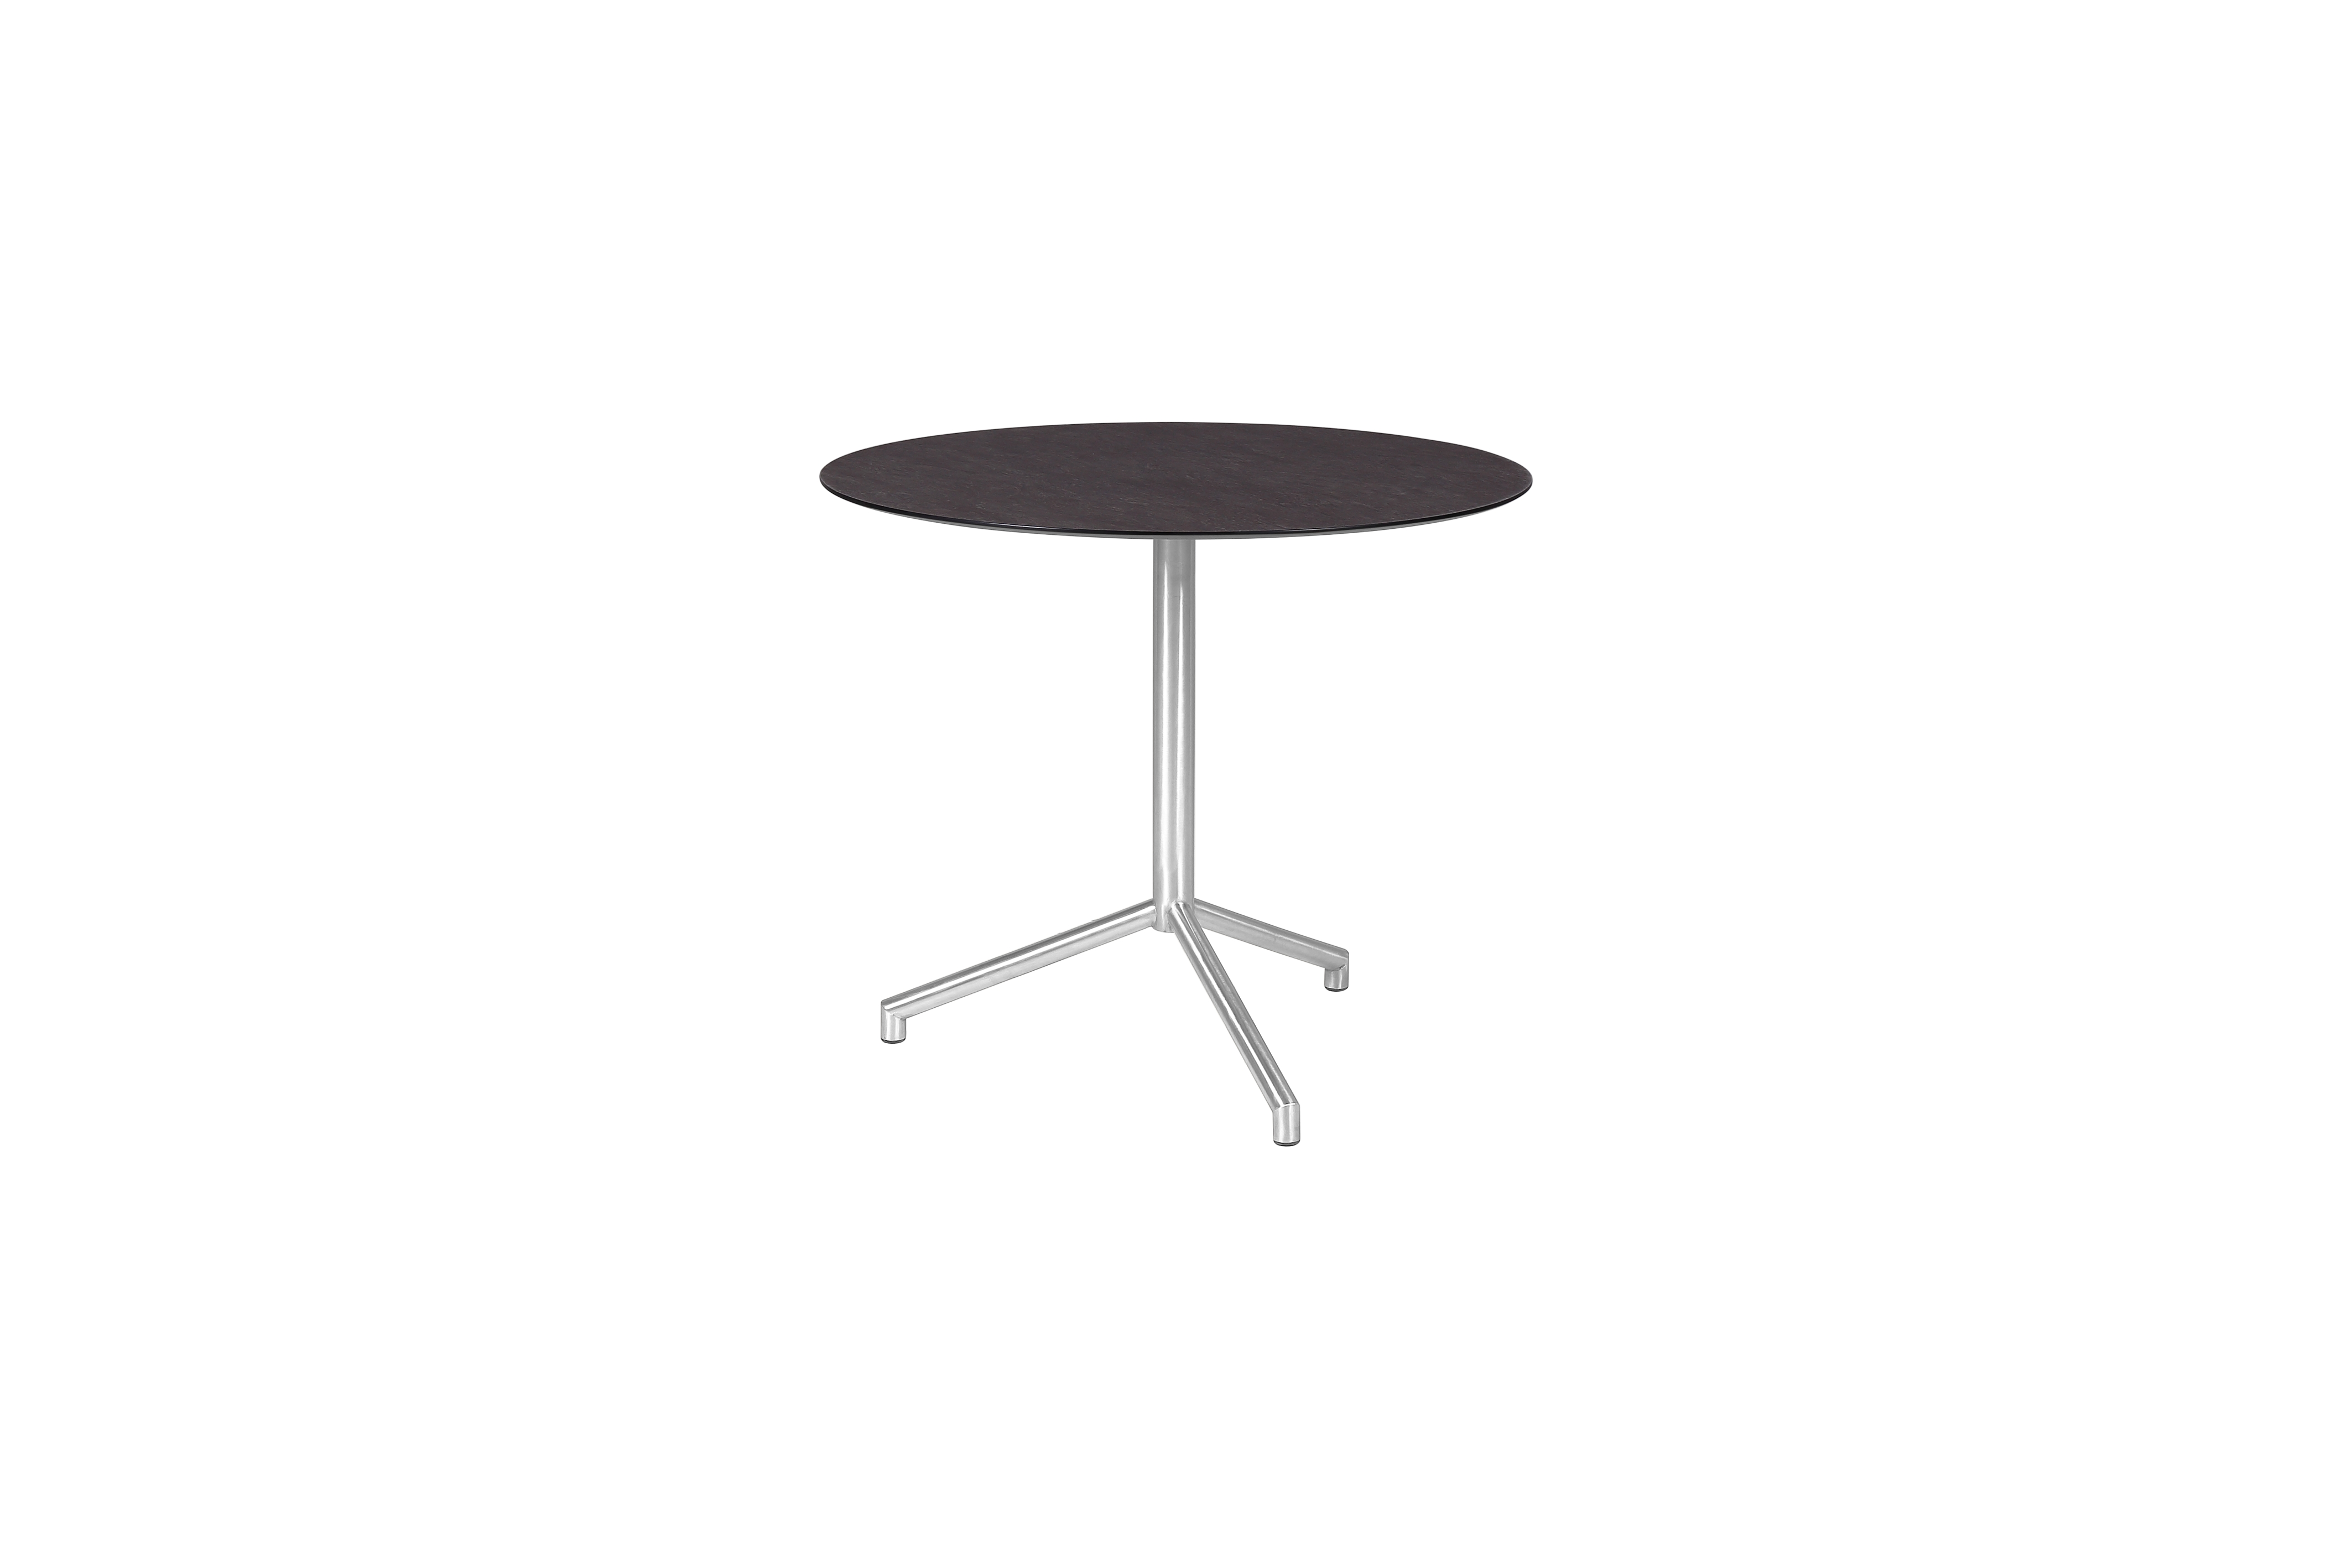 MAMAGREEN_CAF02_CAFE_round_table_flip_top_dia_70_cm_hpl